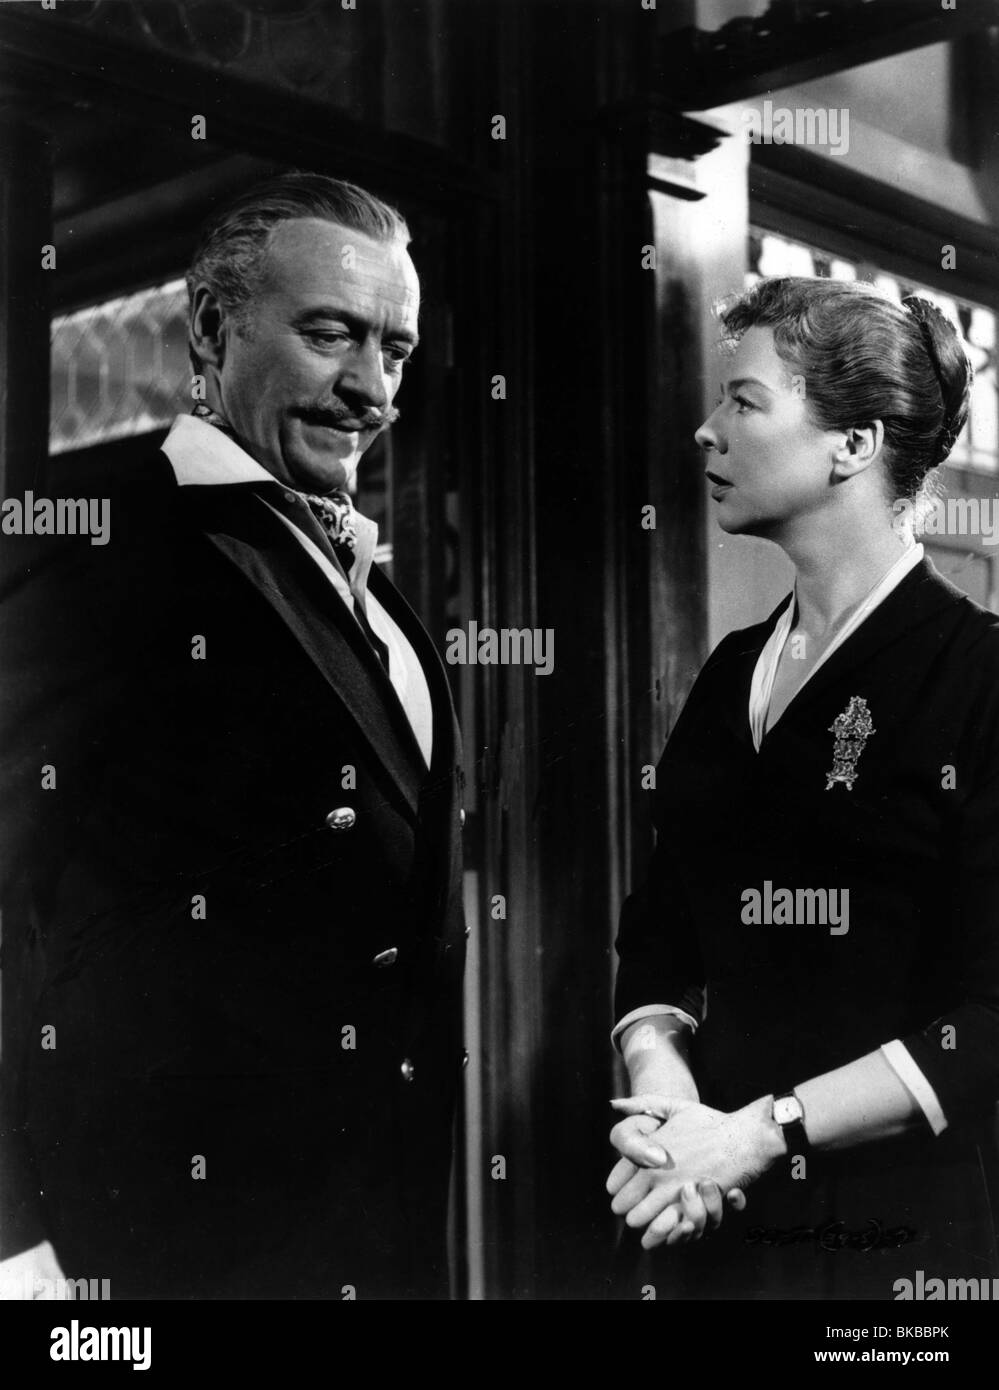 SEPARATE TABLES DAVID NIVEN,WENDY HILLER STAB 001P - Stock Image